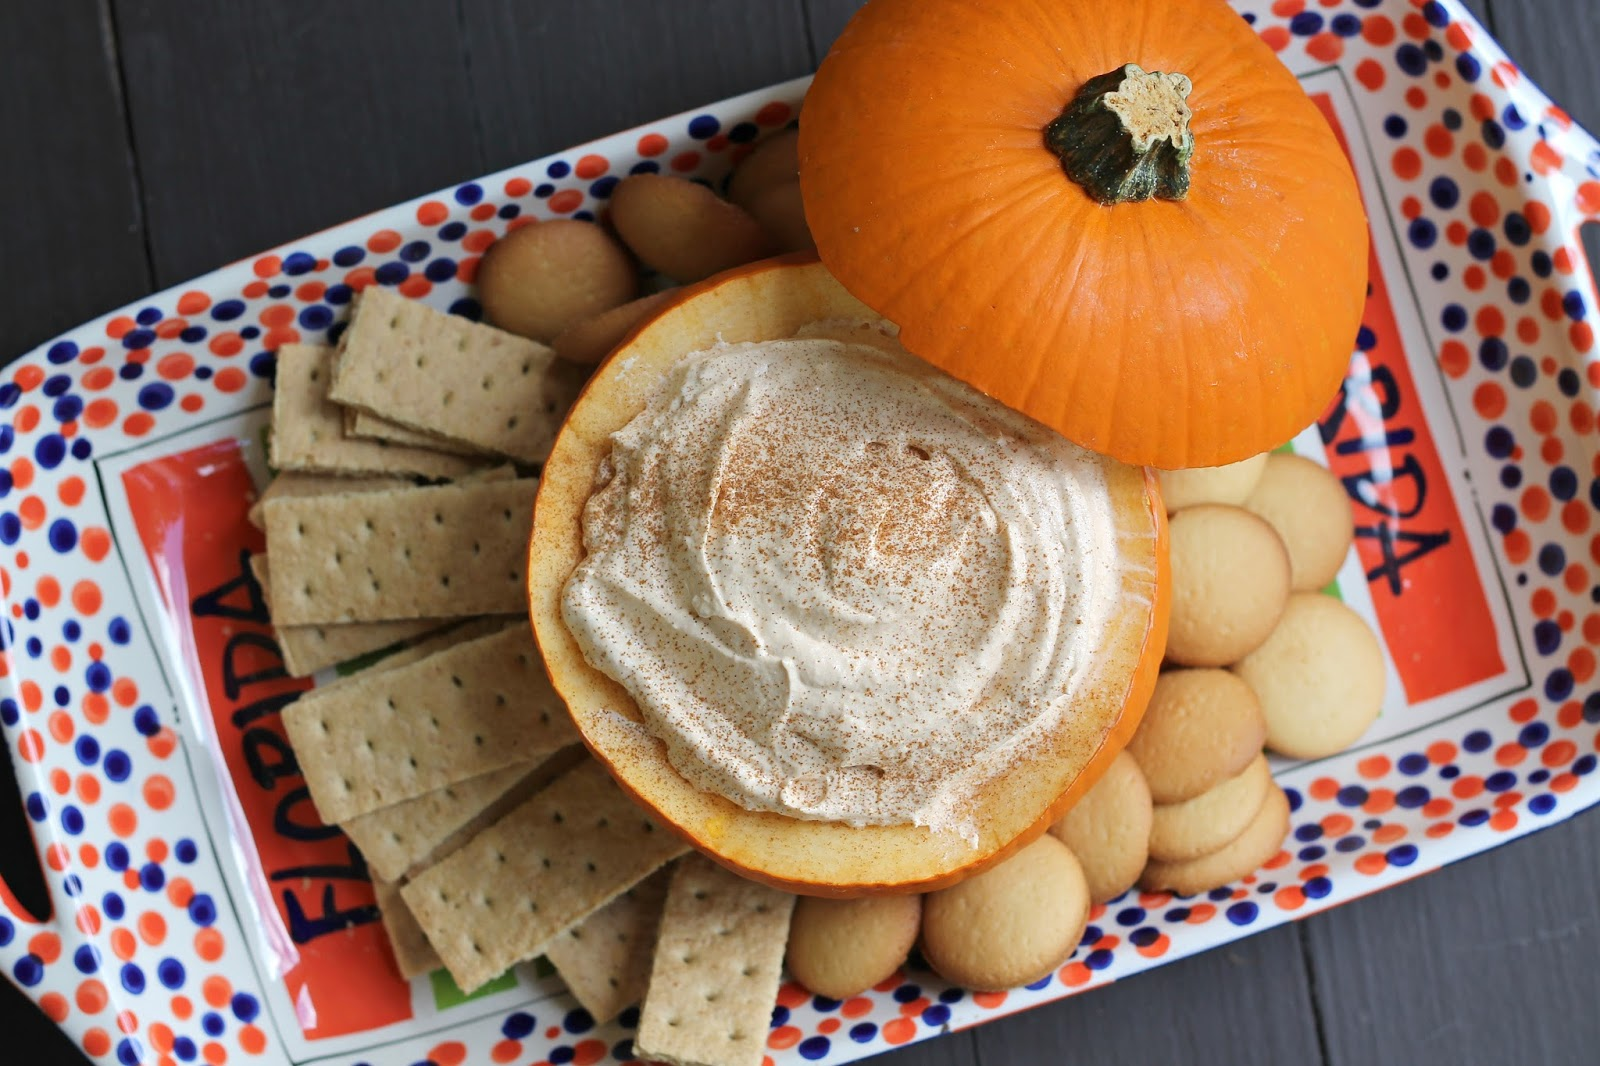 North Carolina lifestyle blogger, Christina shares an easy pumpkin dip recipe! Plate this recipe inside of a pumpkin to add to the table decor!